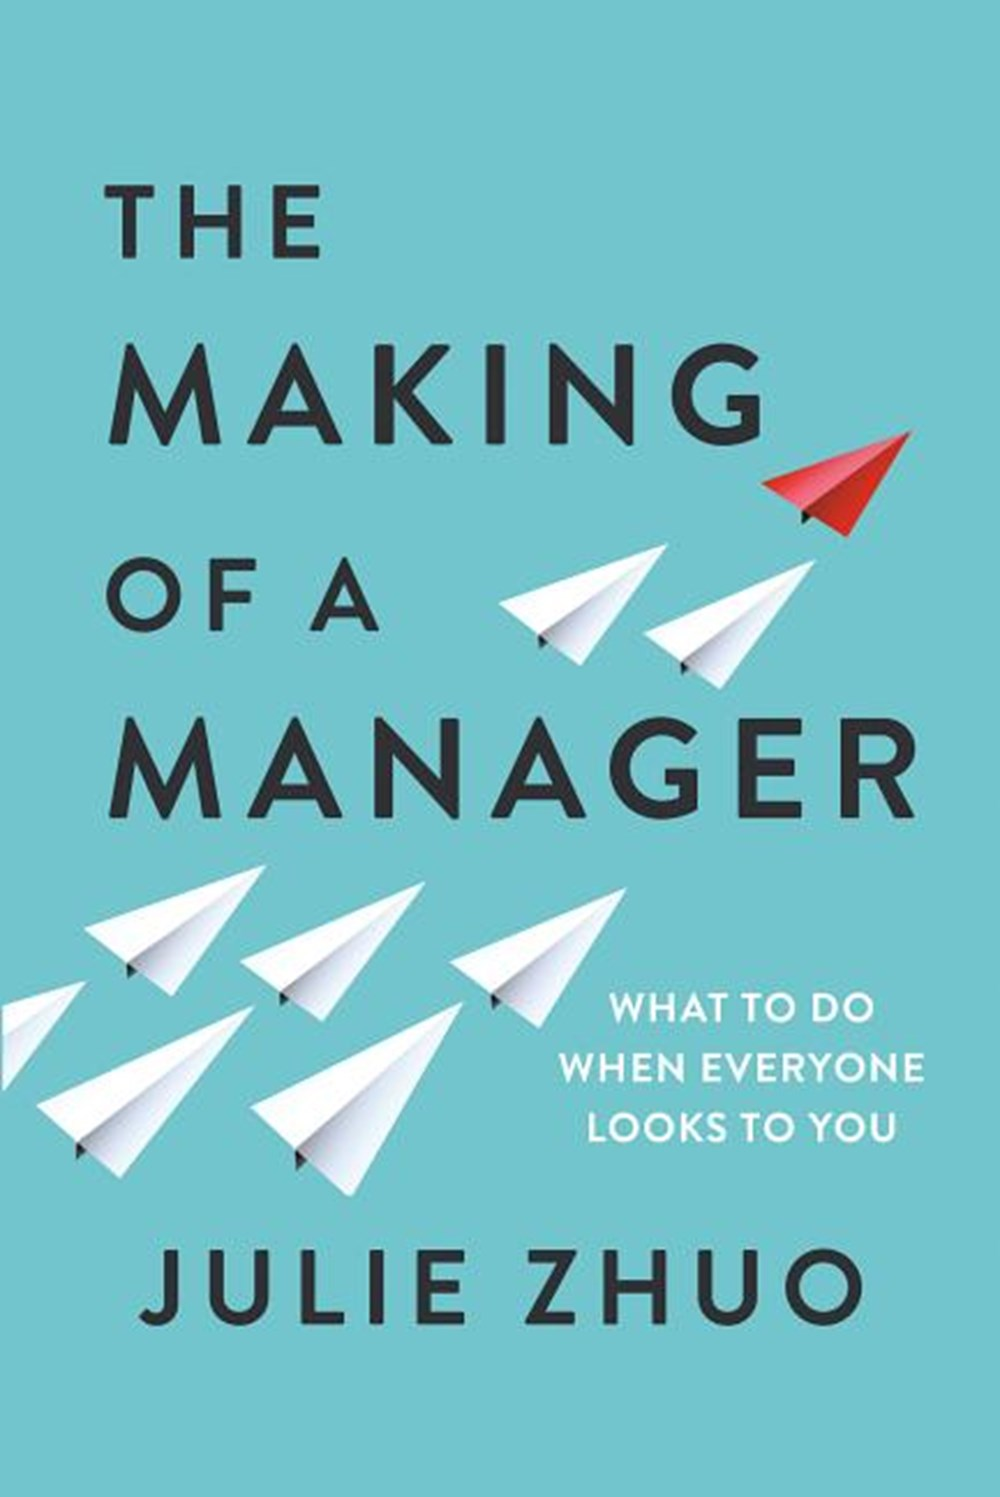 Making of a Manager What to Do When Everyone Looks to You